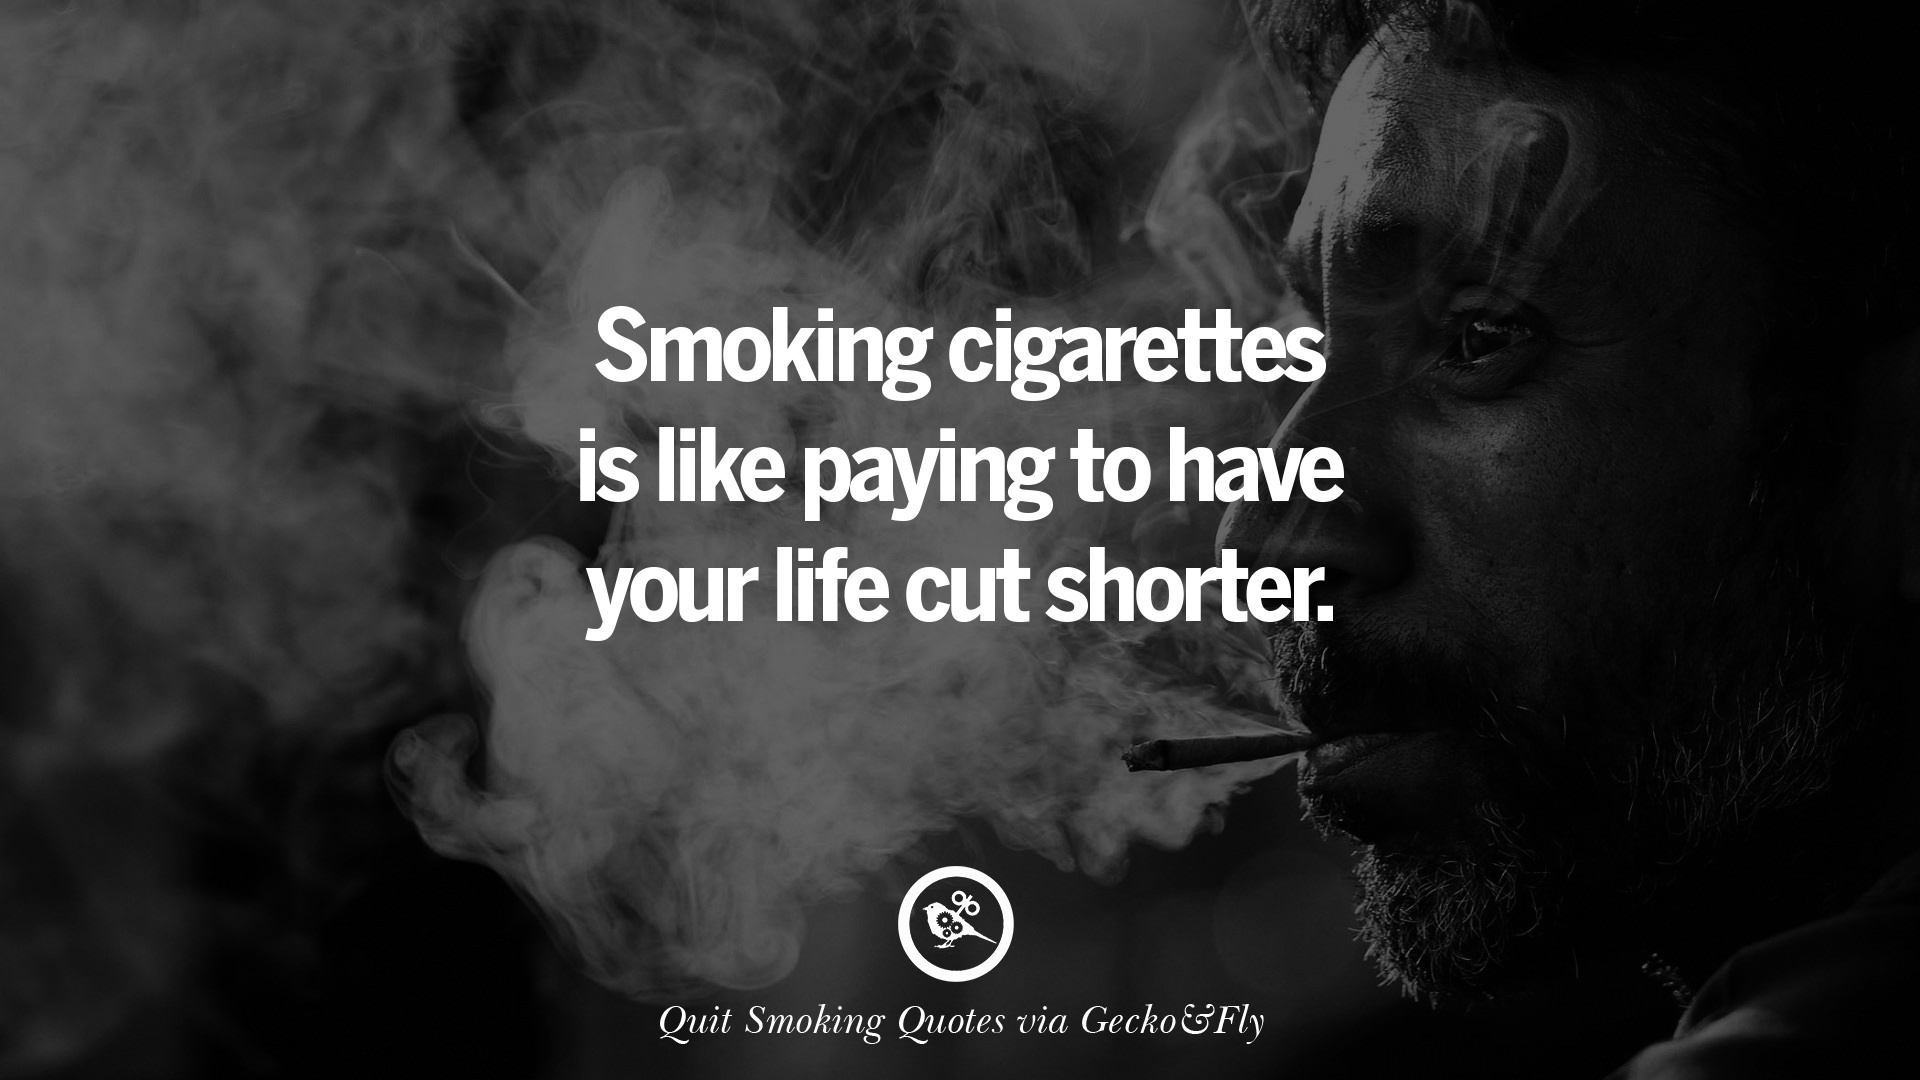 Smoking Quotes 20 Motivational Slogans To Help You Quit Smoking And Stop Lungs .